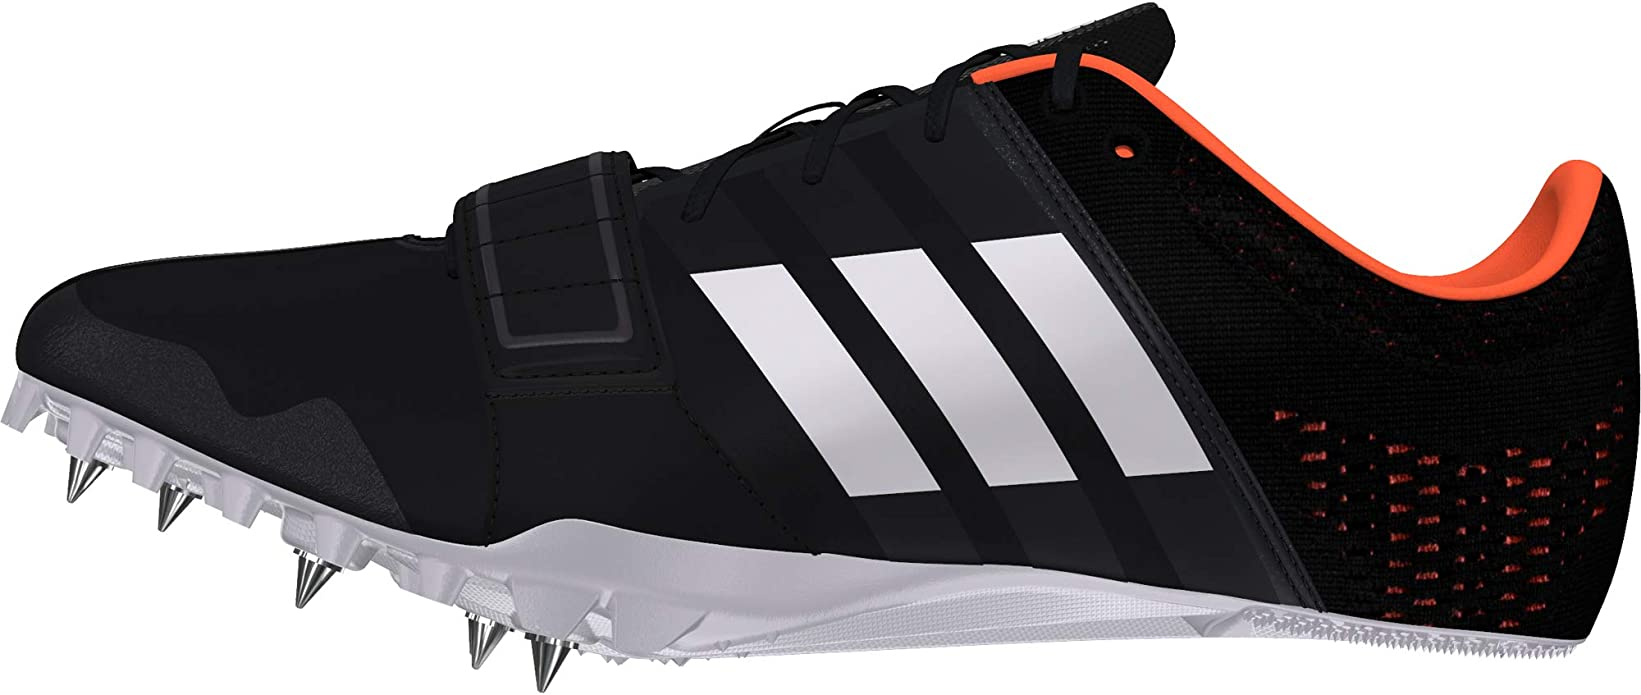 adidas running shoes spikes